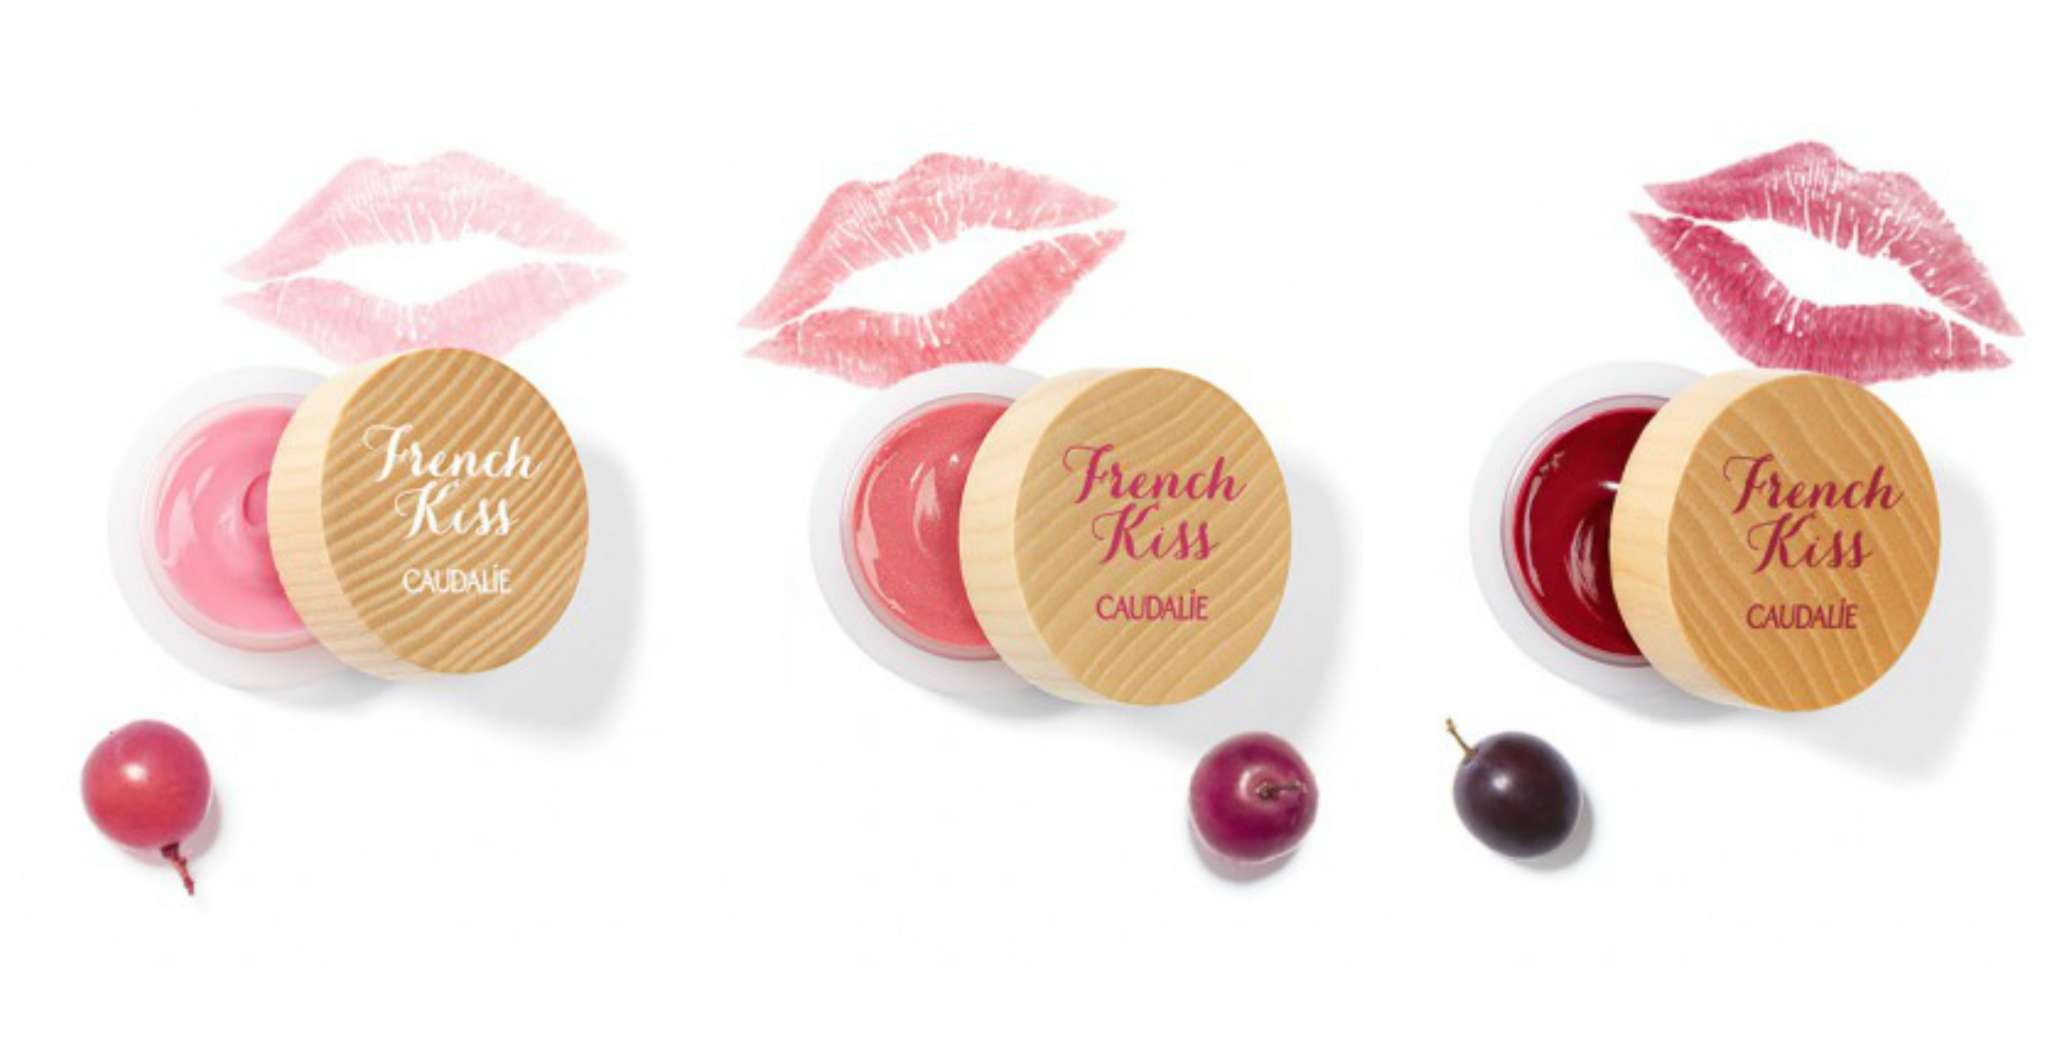 caudalie french kiss lip balm review baume lèvres avis